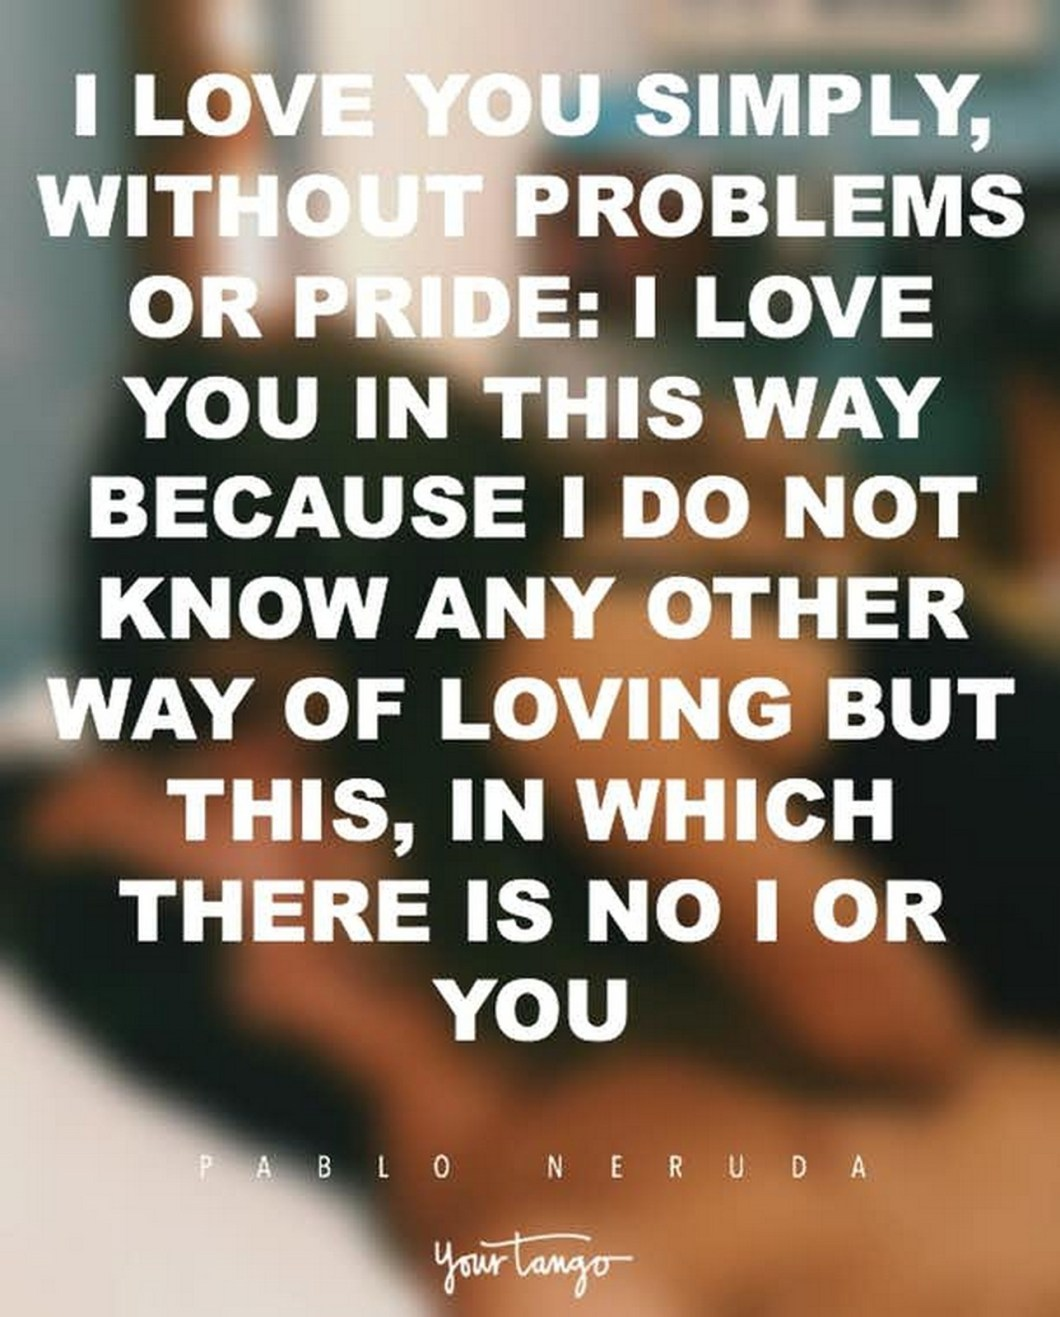 """55 Romantic Quotes - """"I love you simply, without problems or pride: I love you in this way because I do not know any other way of loving but this, in which there is no I or you."""" - Pablo Neruda"""